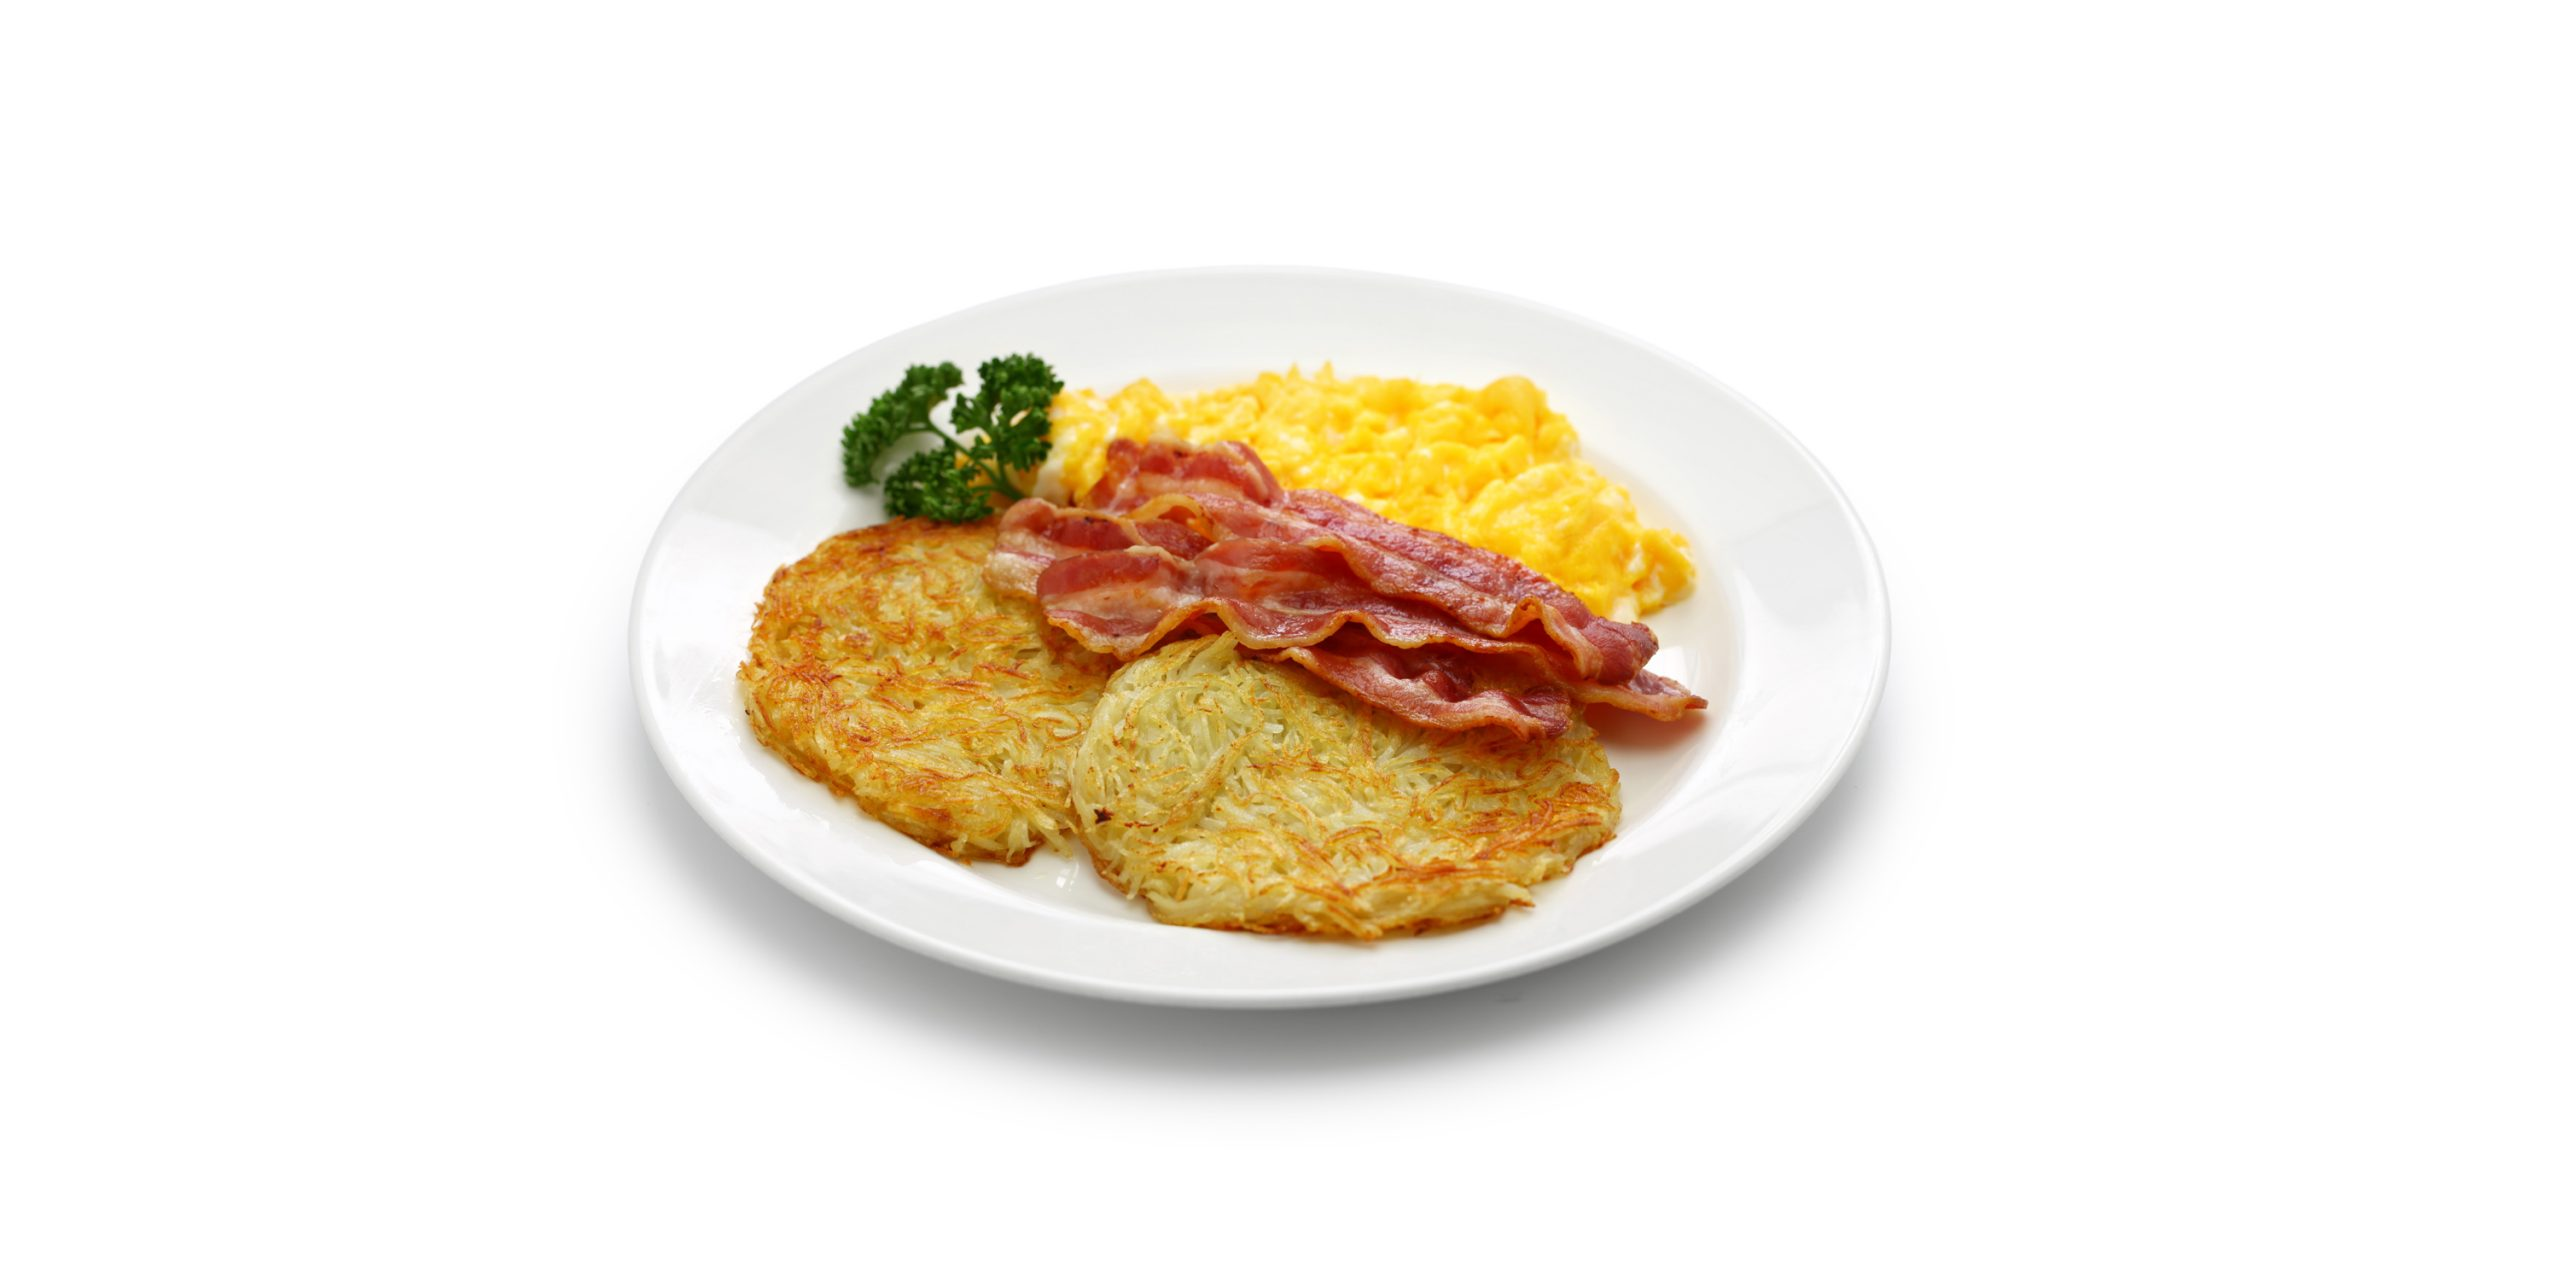 Have a weekend breakfast experience with a bacon, egg & hash brown flavour | 100% natural, kosher & vegan